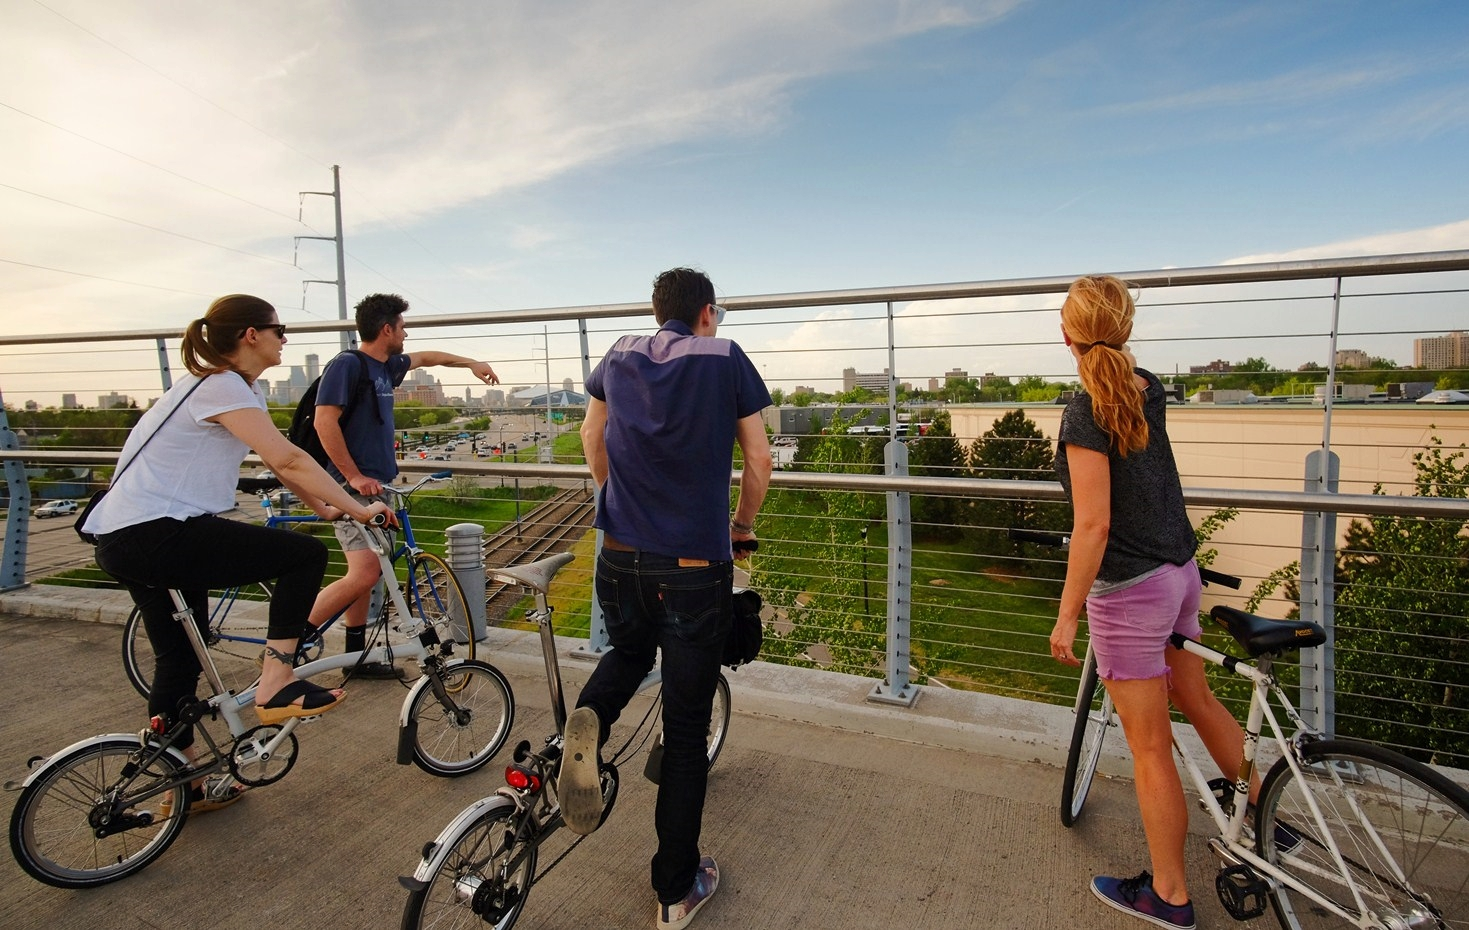 Stopping to admire views with friends and sharing experiences is a major highlight of biking in a group.